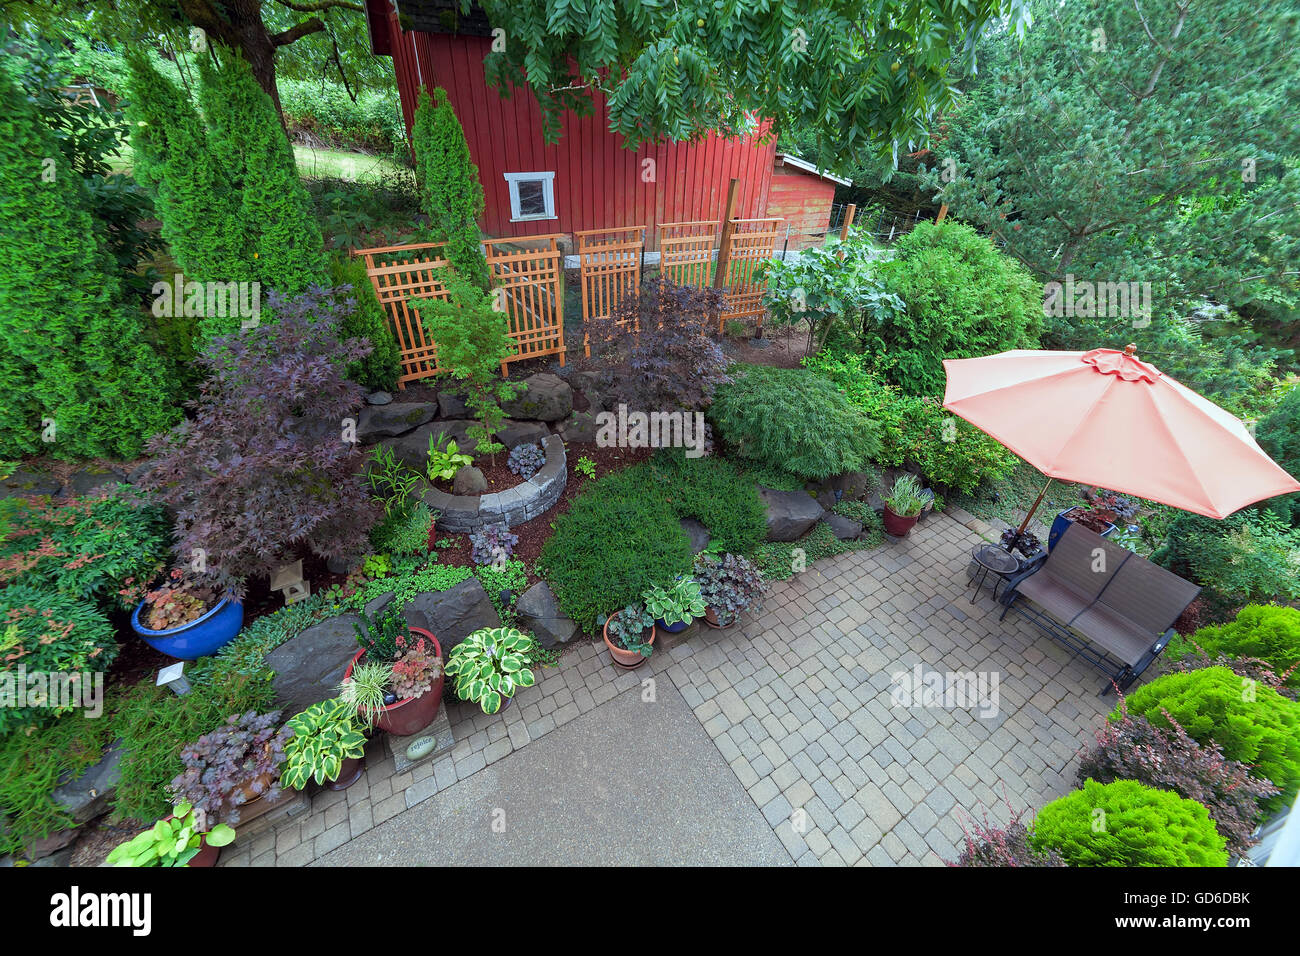 Backyard Garden Landscaping With Paver Bricks Patio Hardscape Trees Potted  Plants Shrubs Pond Rocks Furniture And